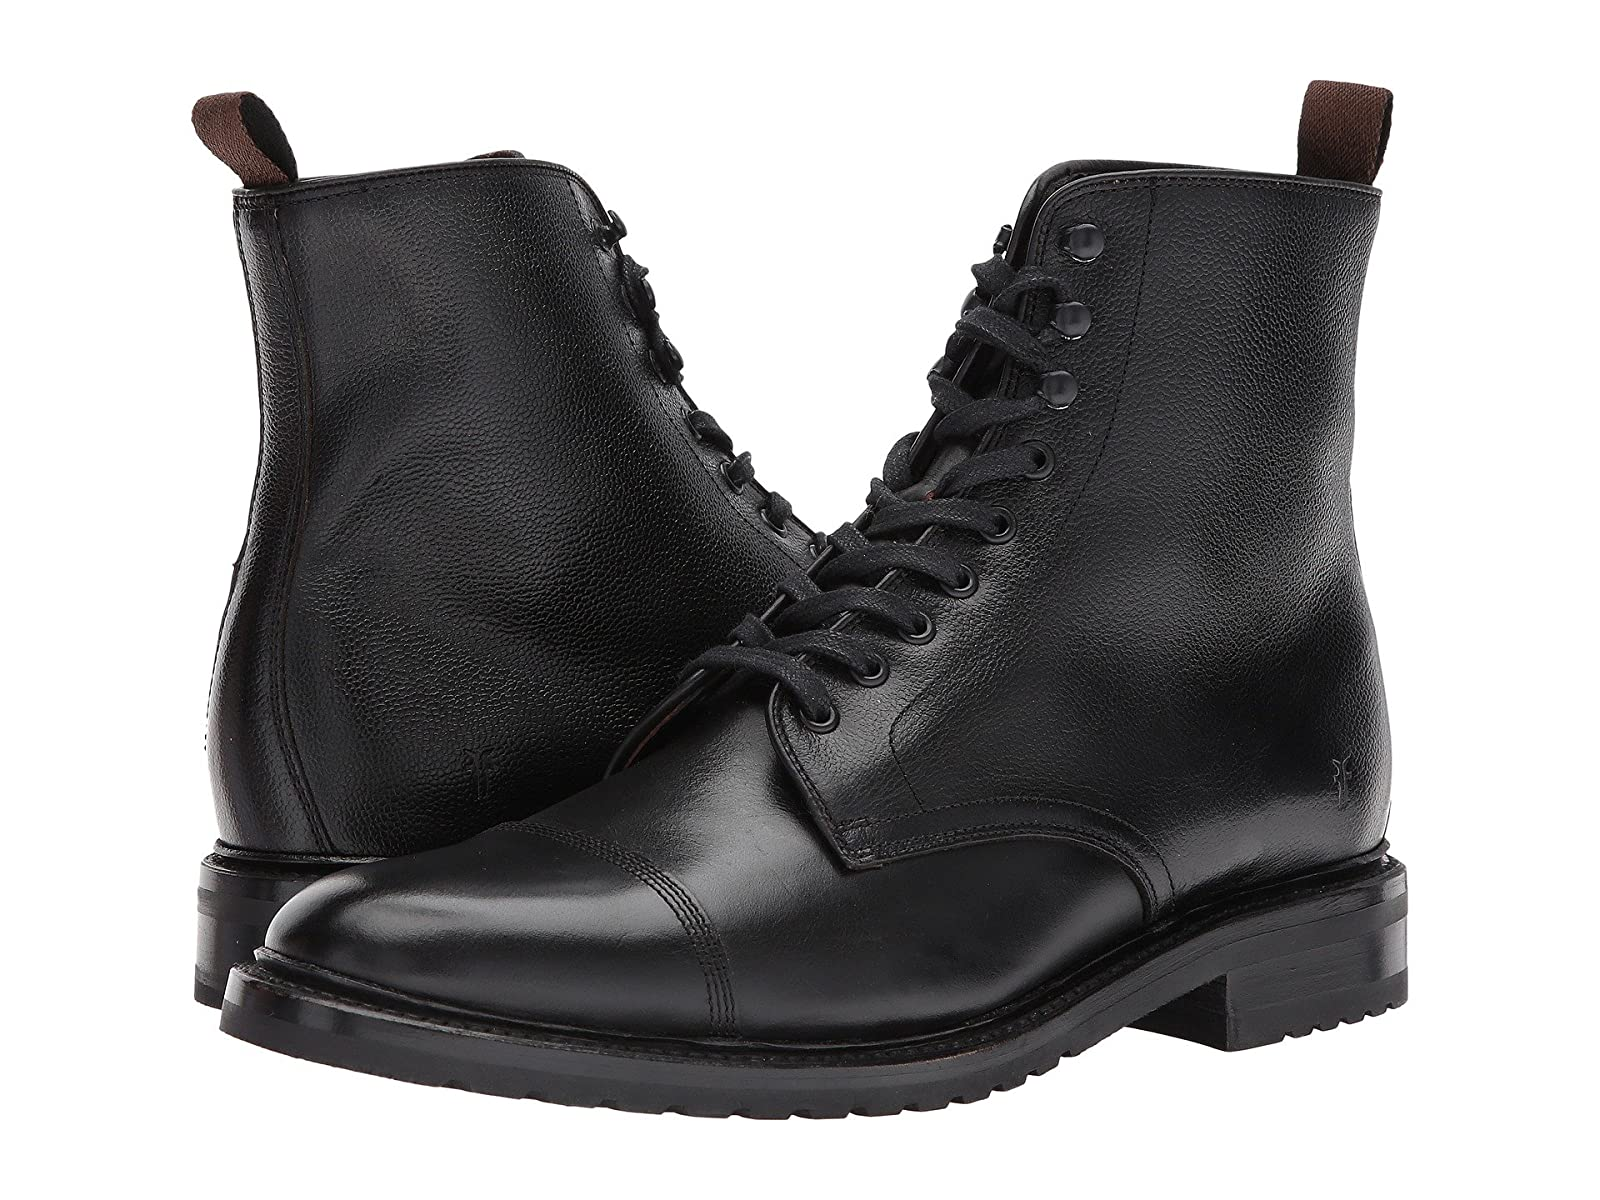 Frye Officer Lace-UpCheap and distinctive eye-catching shoes